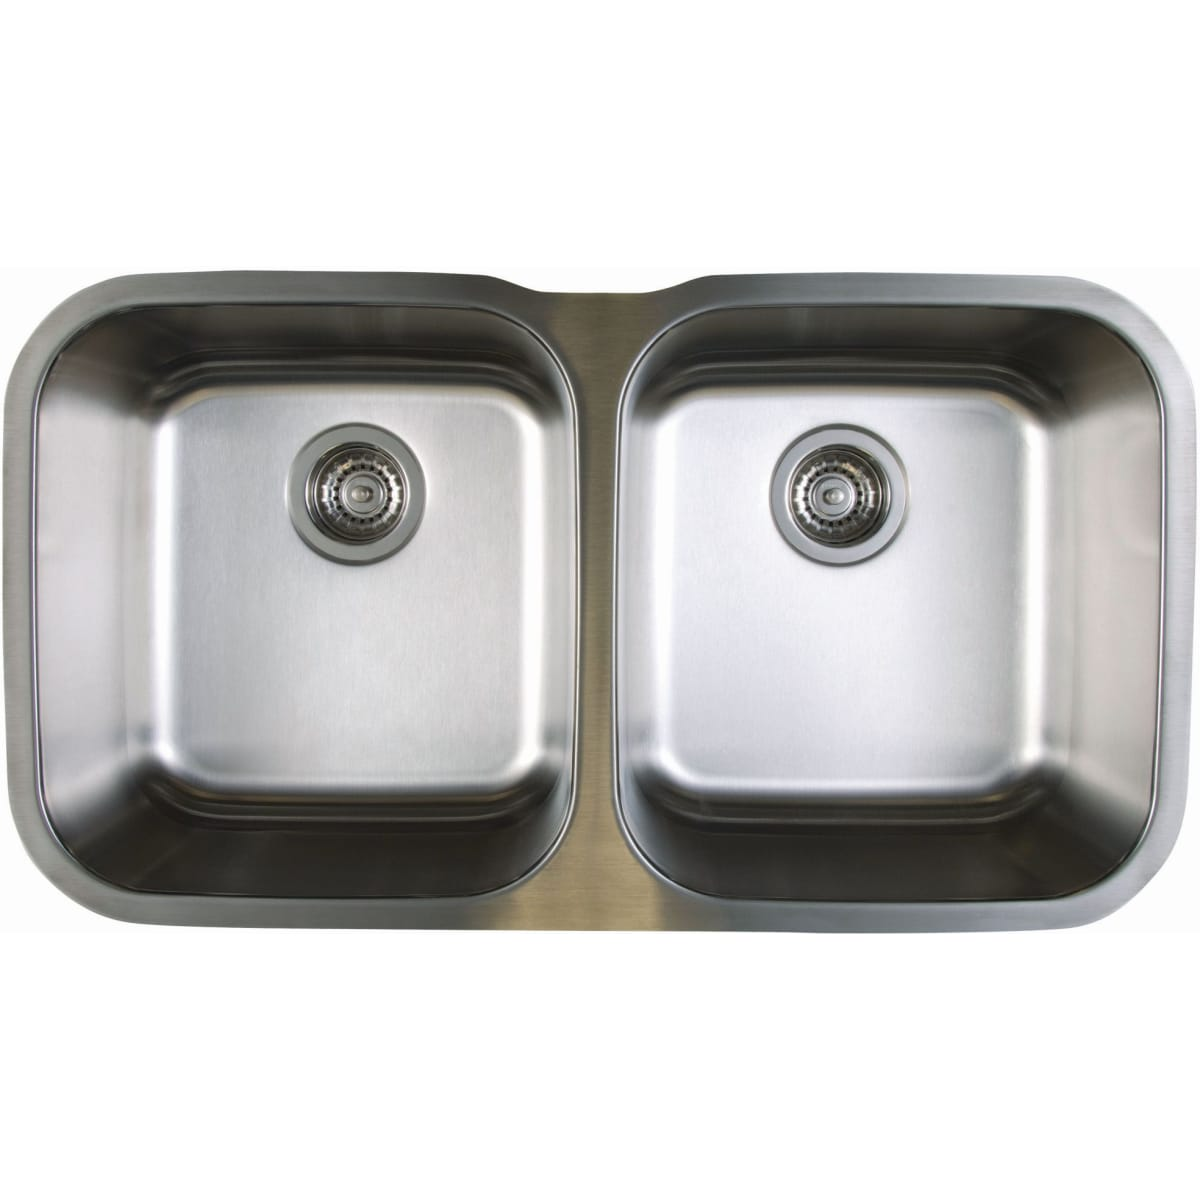 "Blanco Stellar Equal Double Bowl Stainless Steel Undermount Kitchen Sink 33 1/3"" x 18 1/2"""